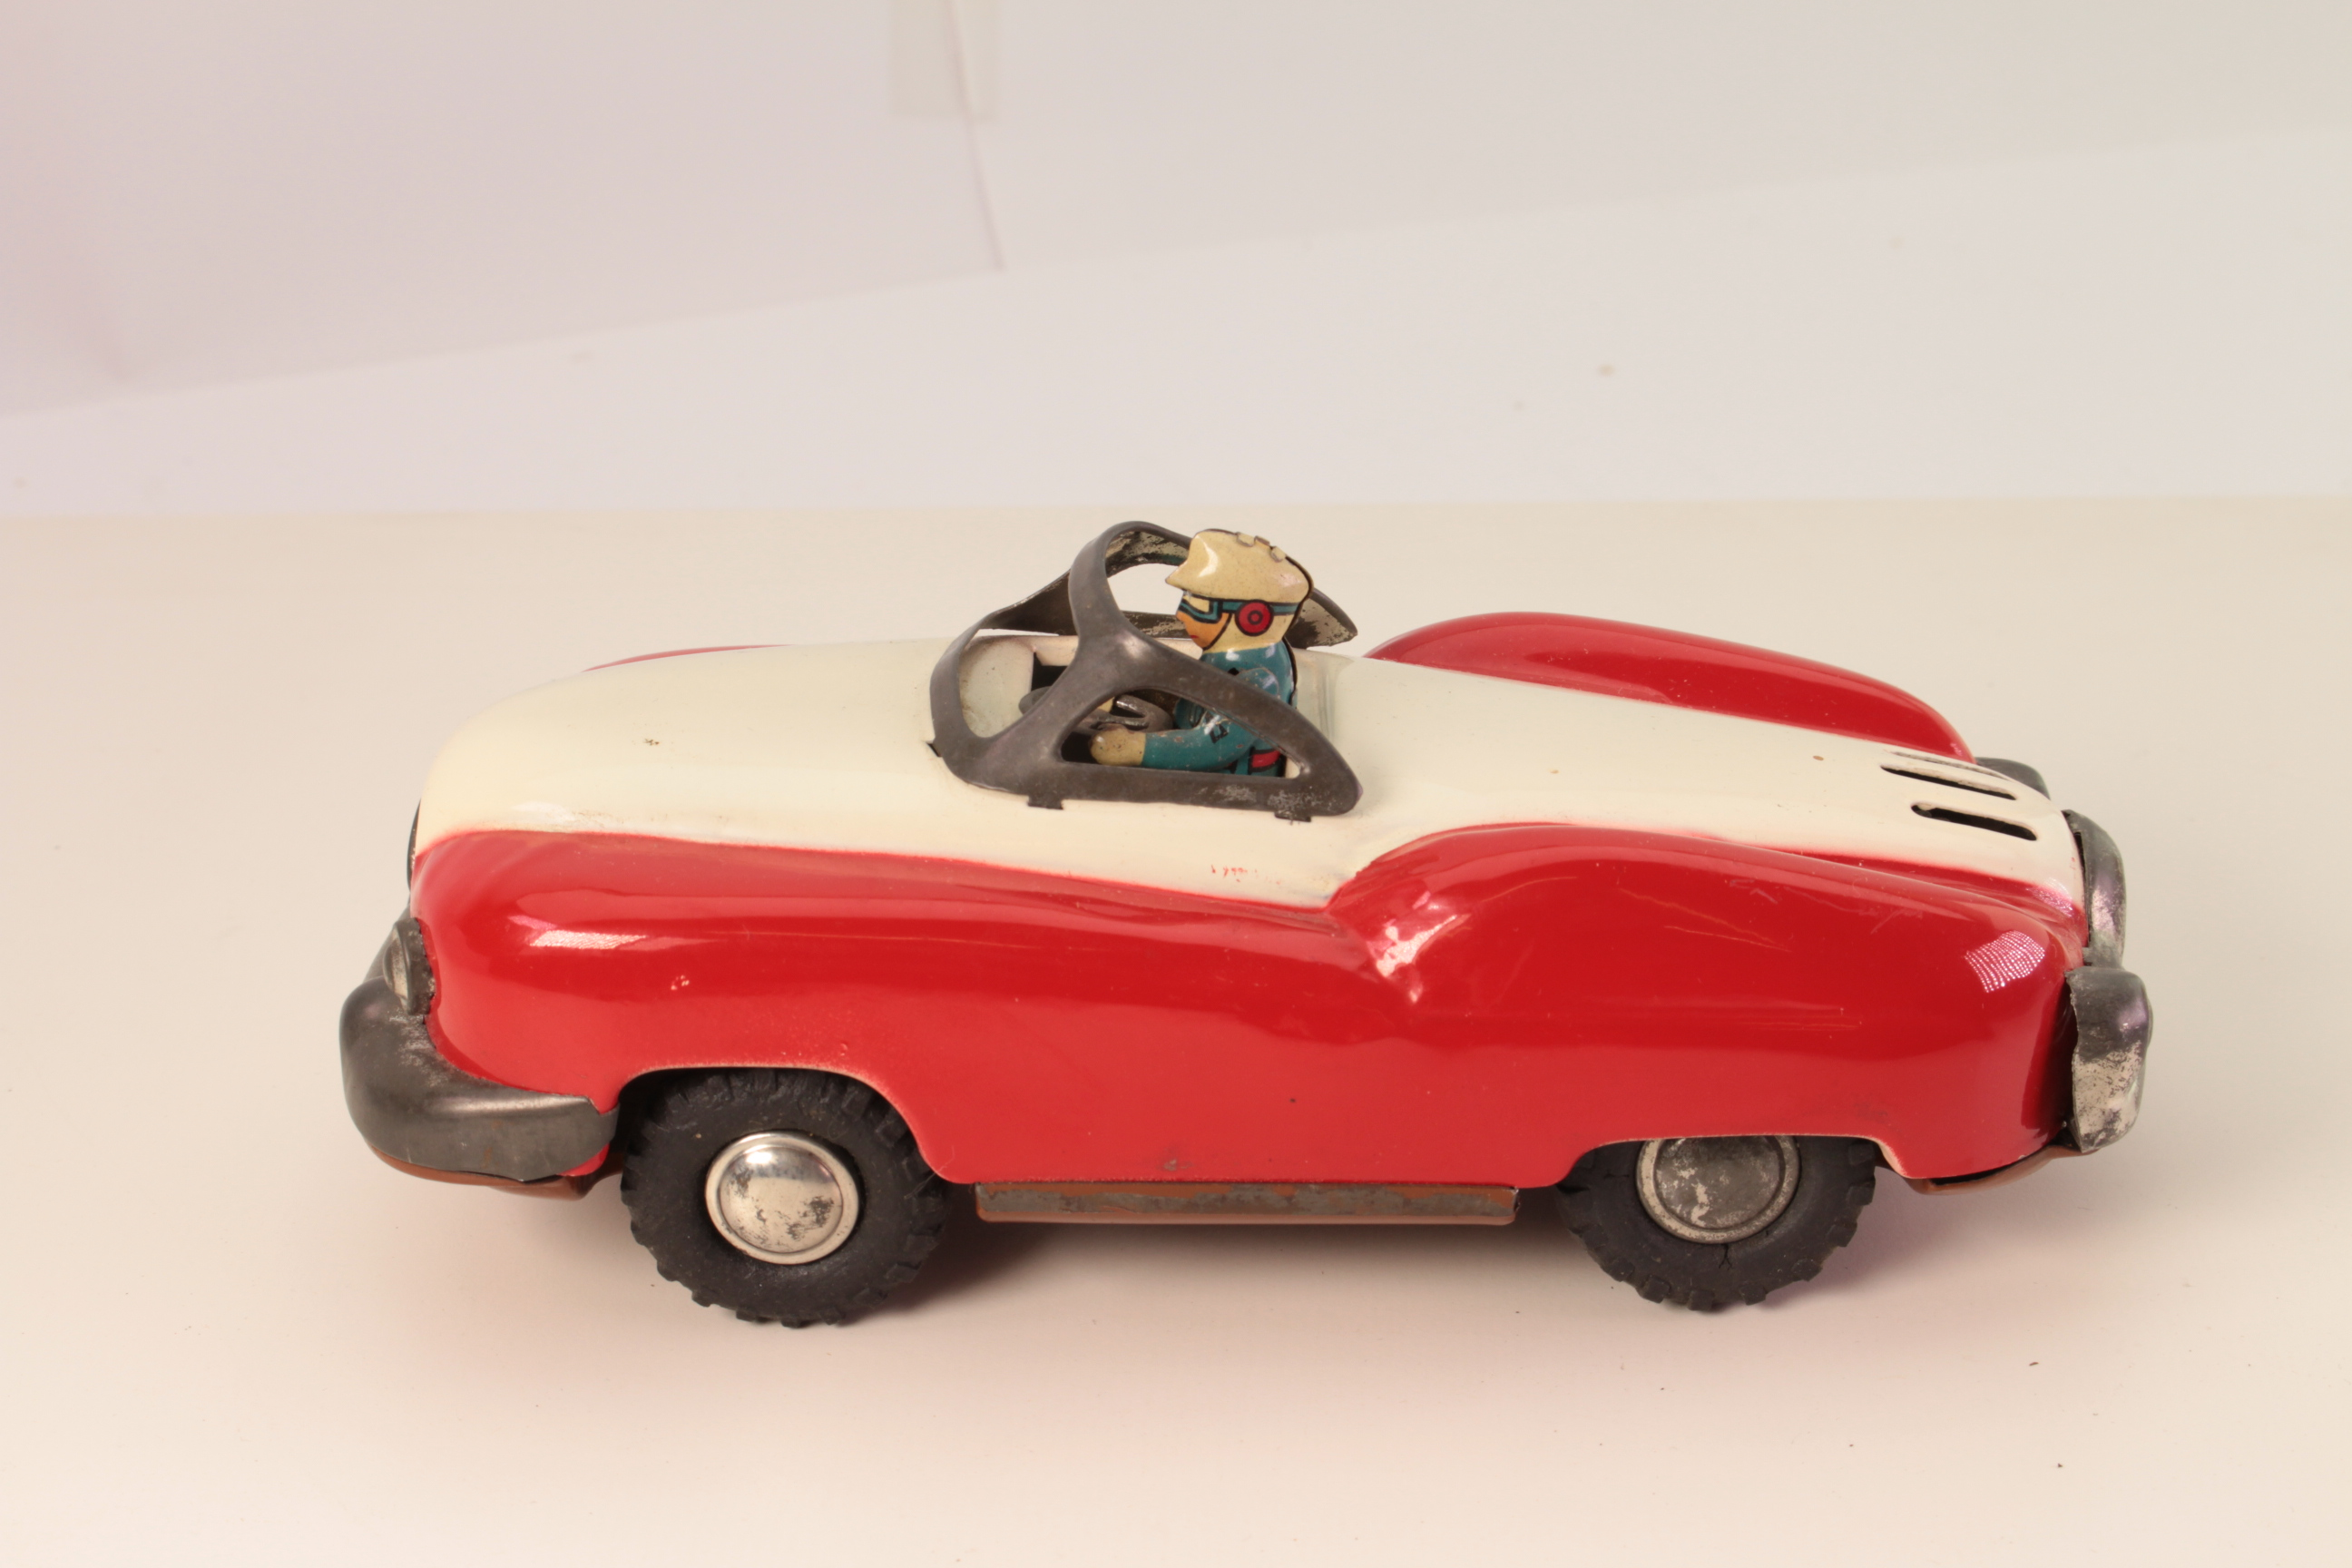 Picture Gallery for Alps 001 Sparkling Comet Car